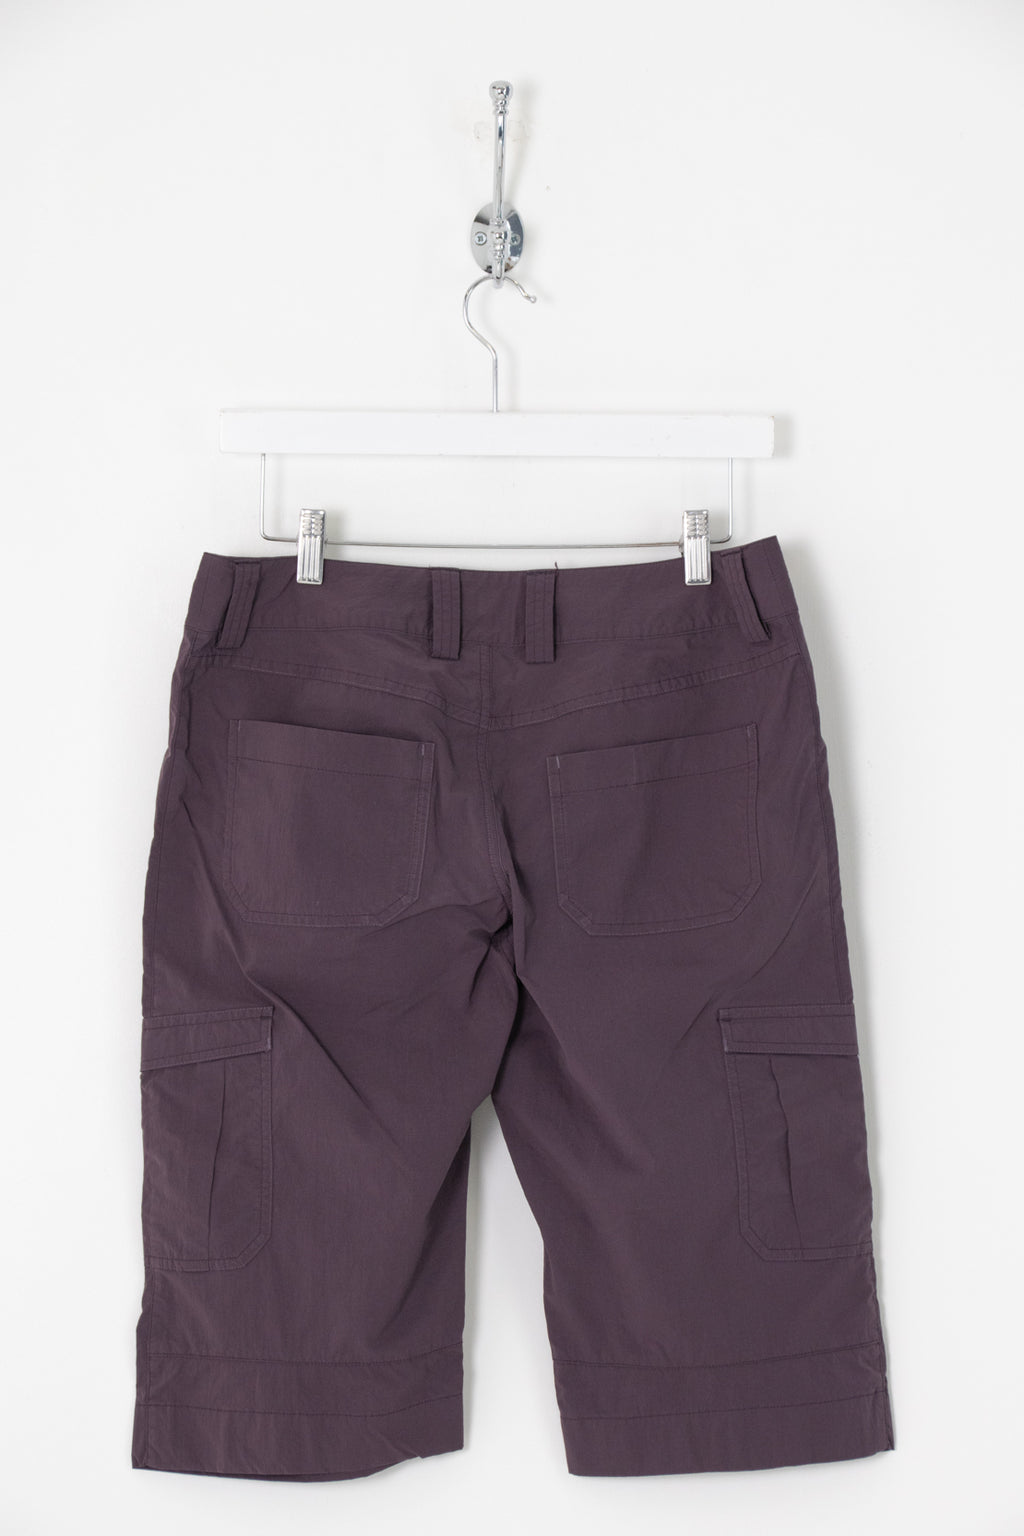 "Women's Arc'teryx Shorts (28"")"